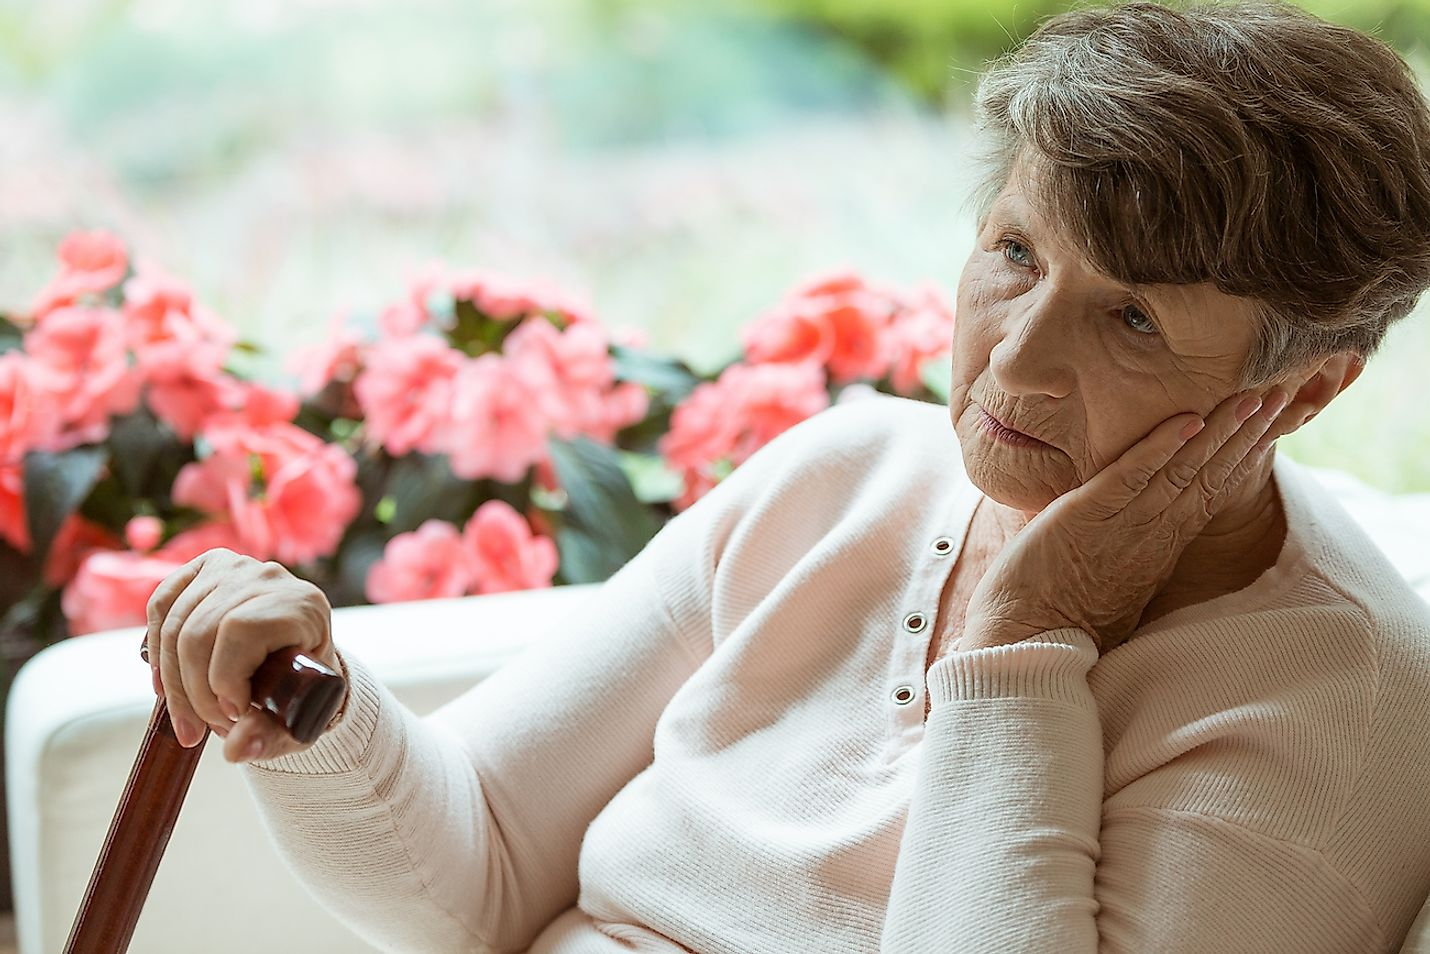 Alzheimer's disease affects the elderly. Image credit: Photographee.eu/Shutterstock.com